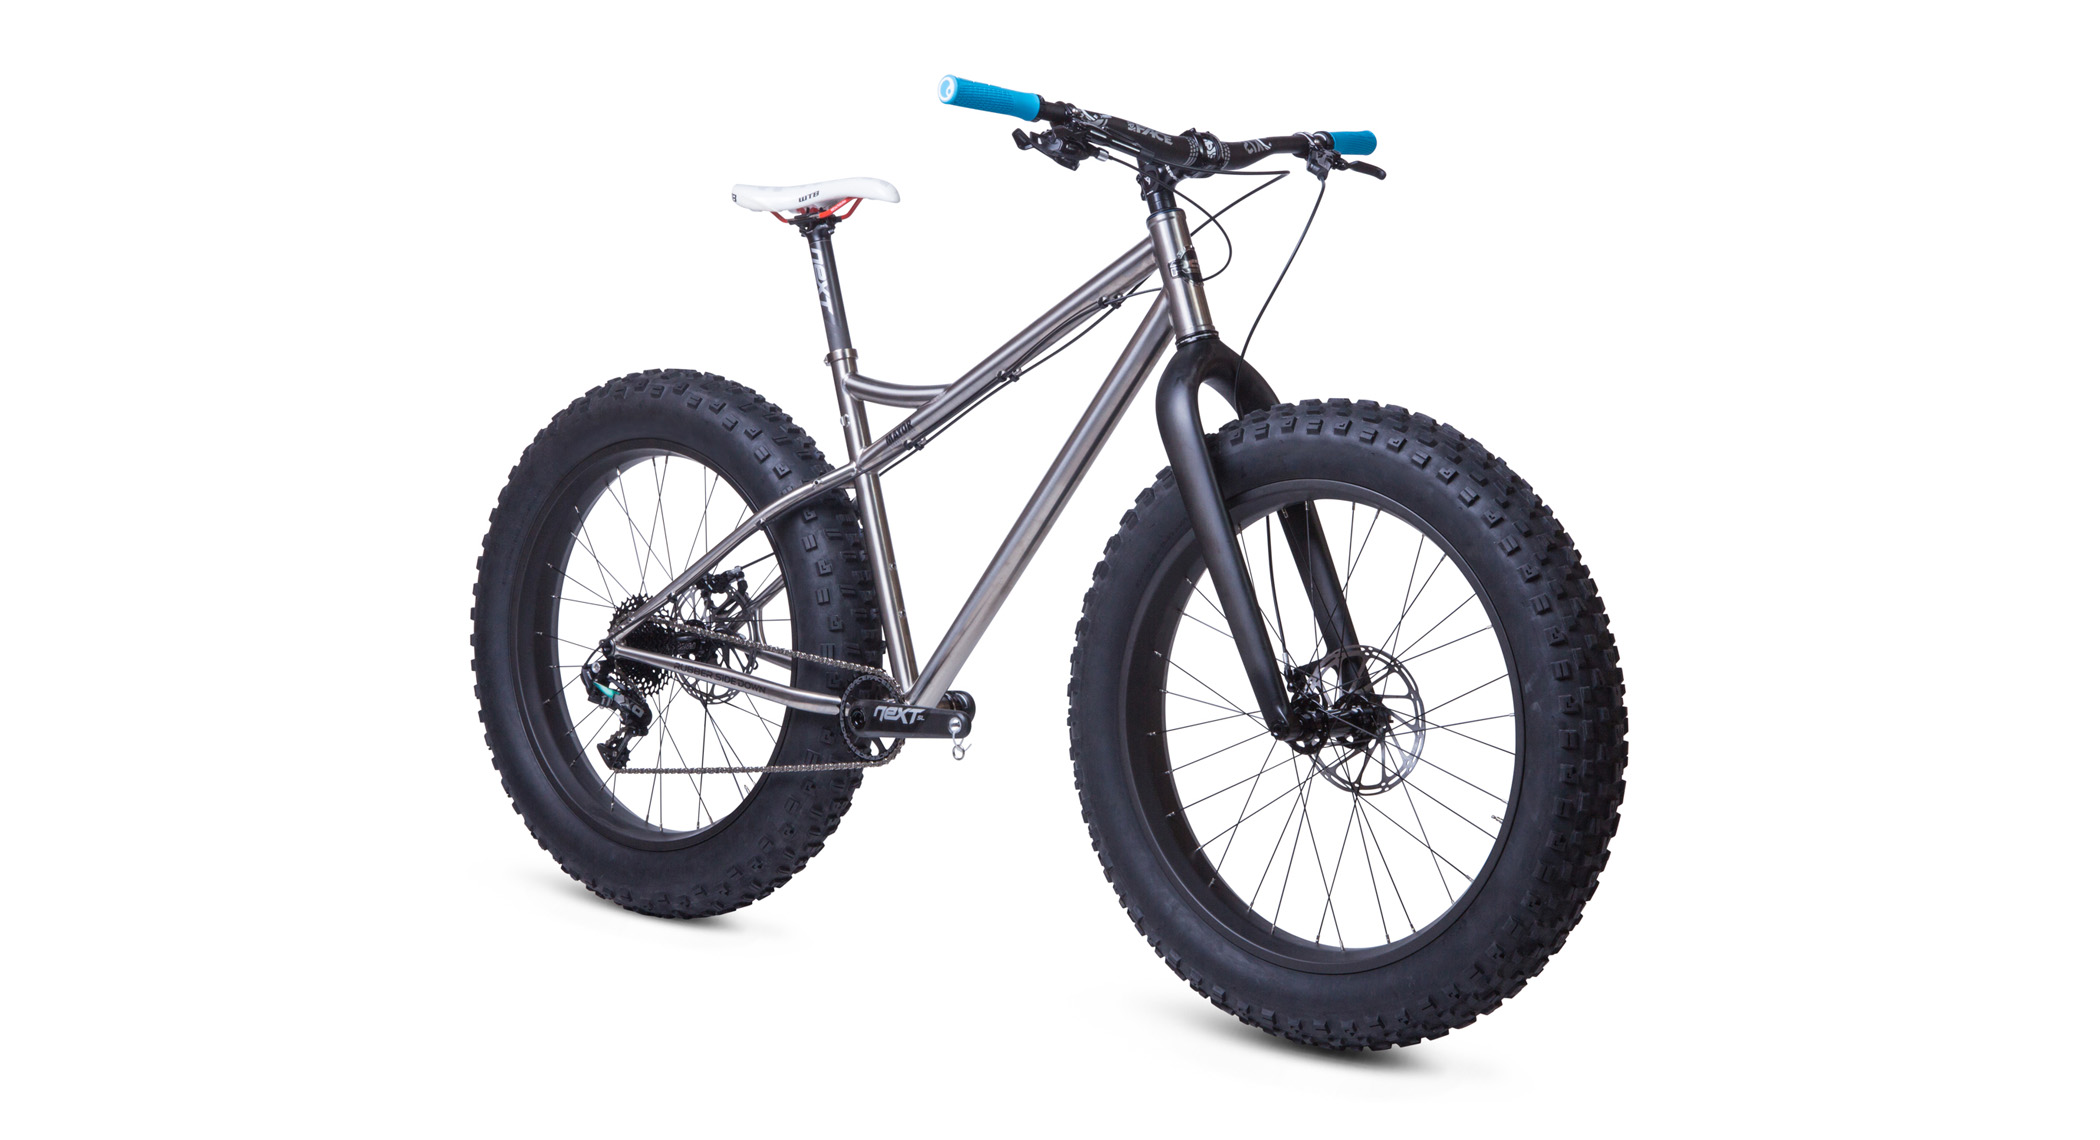 NEW 2016 RSD MAYOR FATBIKE IN TITANIUM WITH CUSTOM CARBON FORK - Calgary